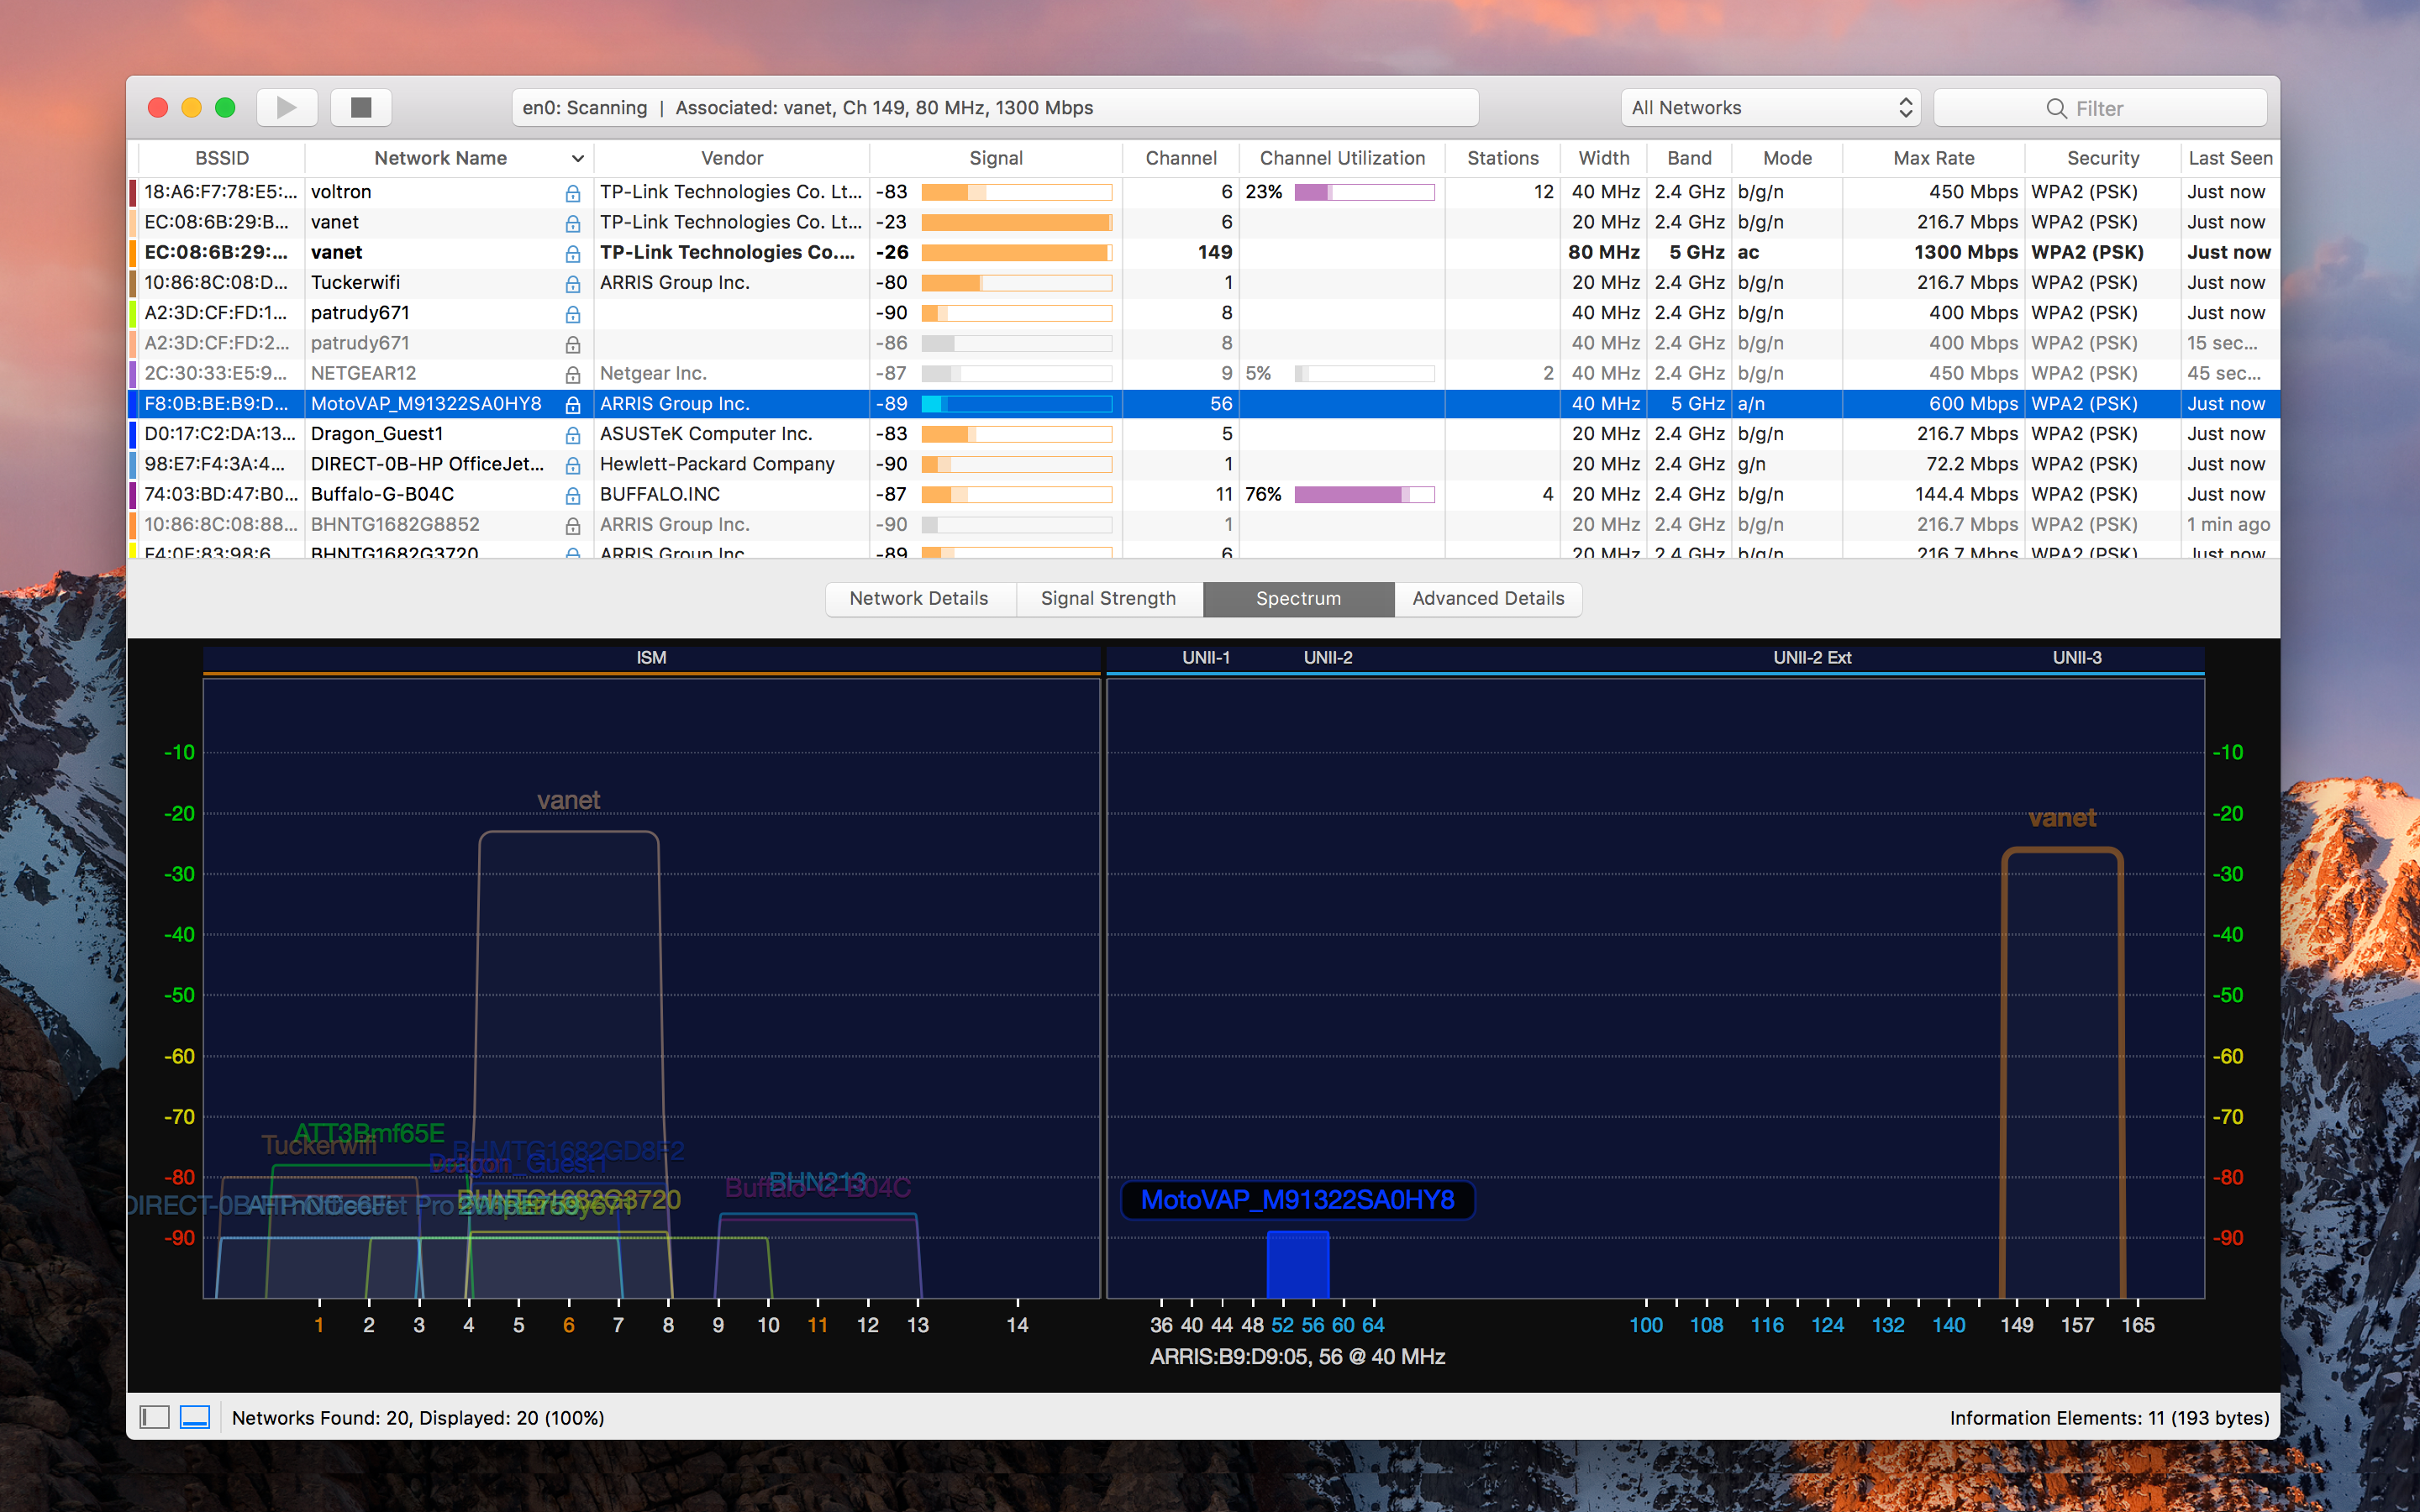 Use network monitoring to identify channel conflicts, overlapping or configuration issues that may be affecting the connectivity and performance of your wireless networks.